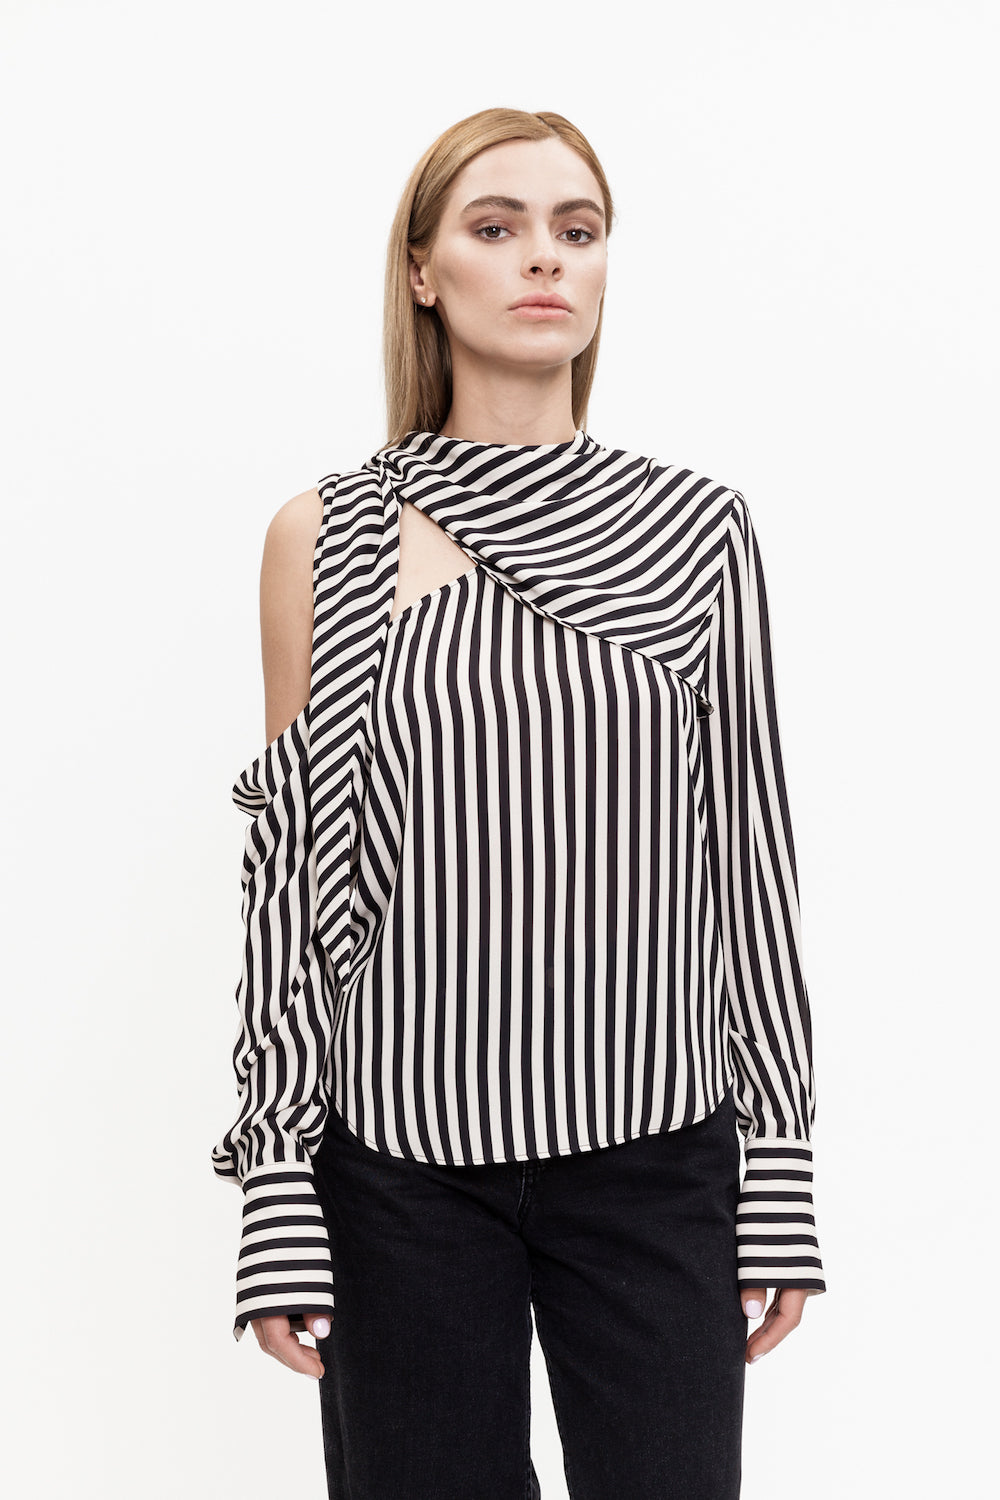 MONY black and white striped blouse